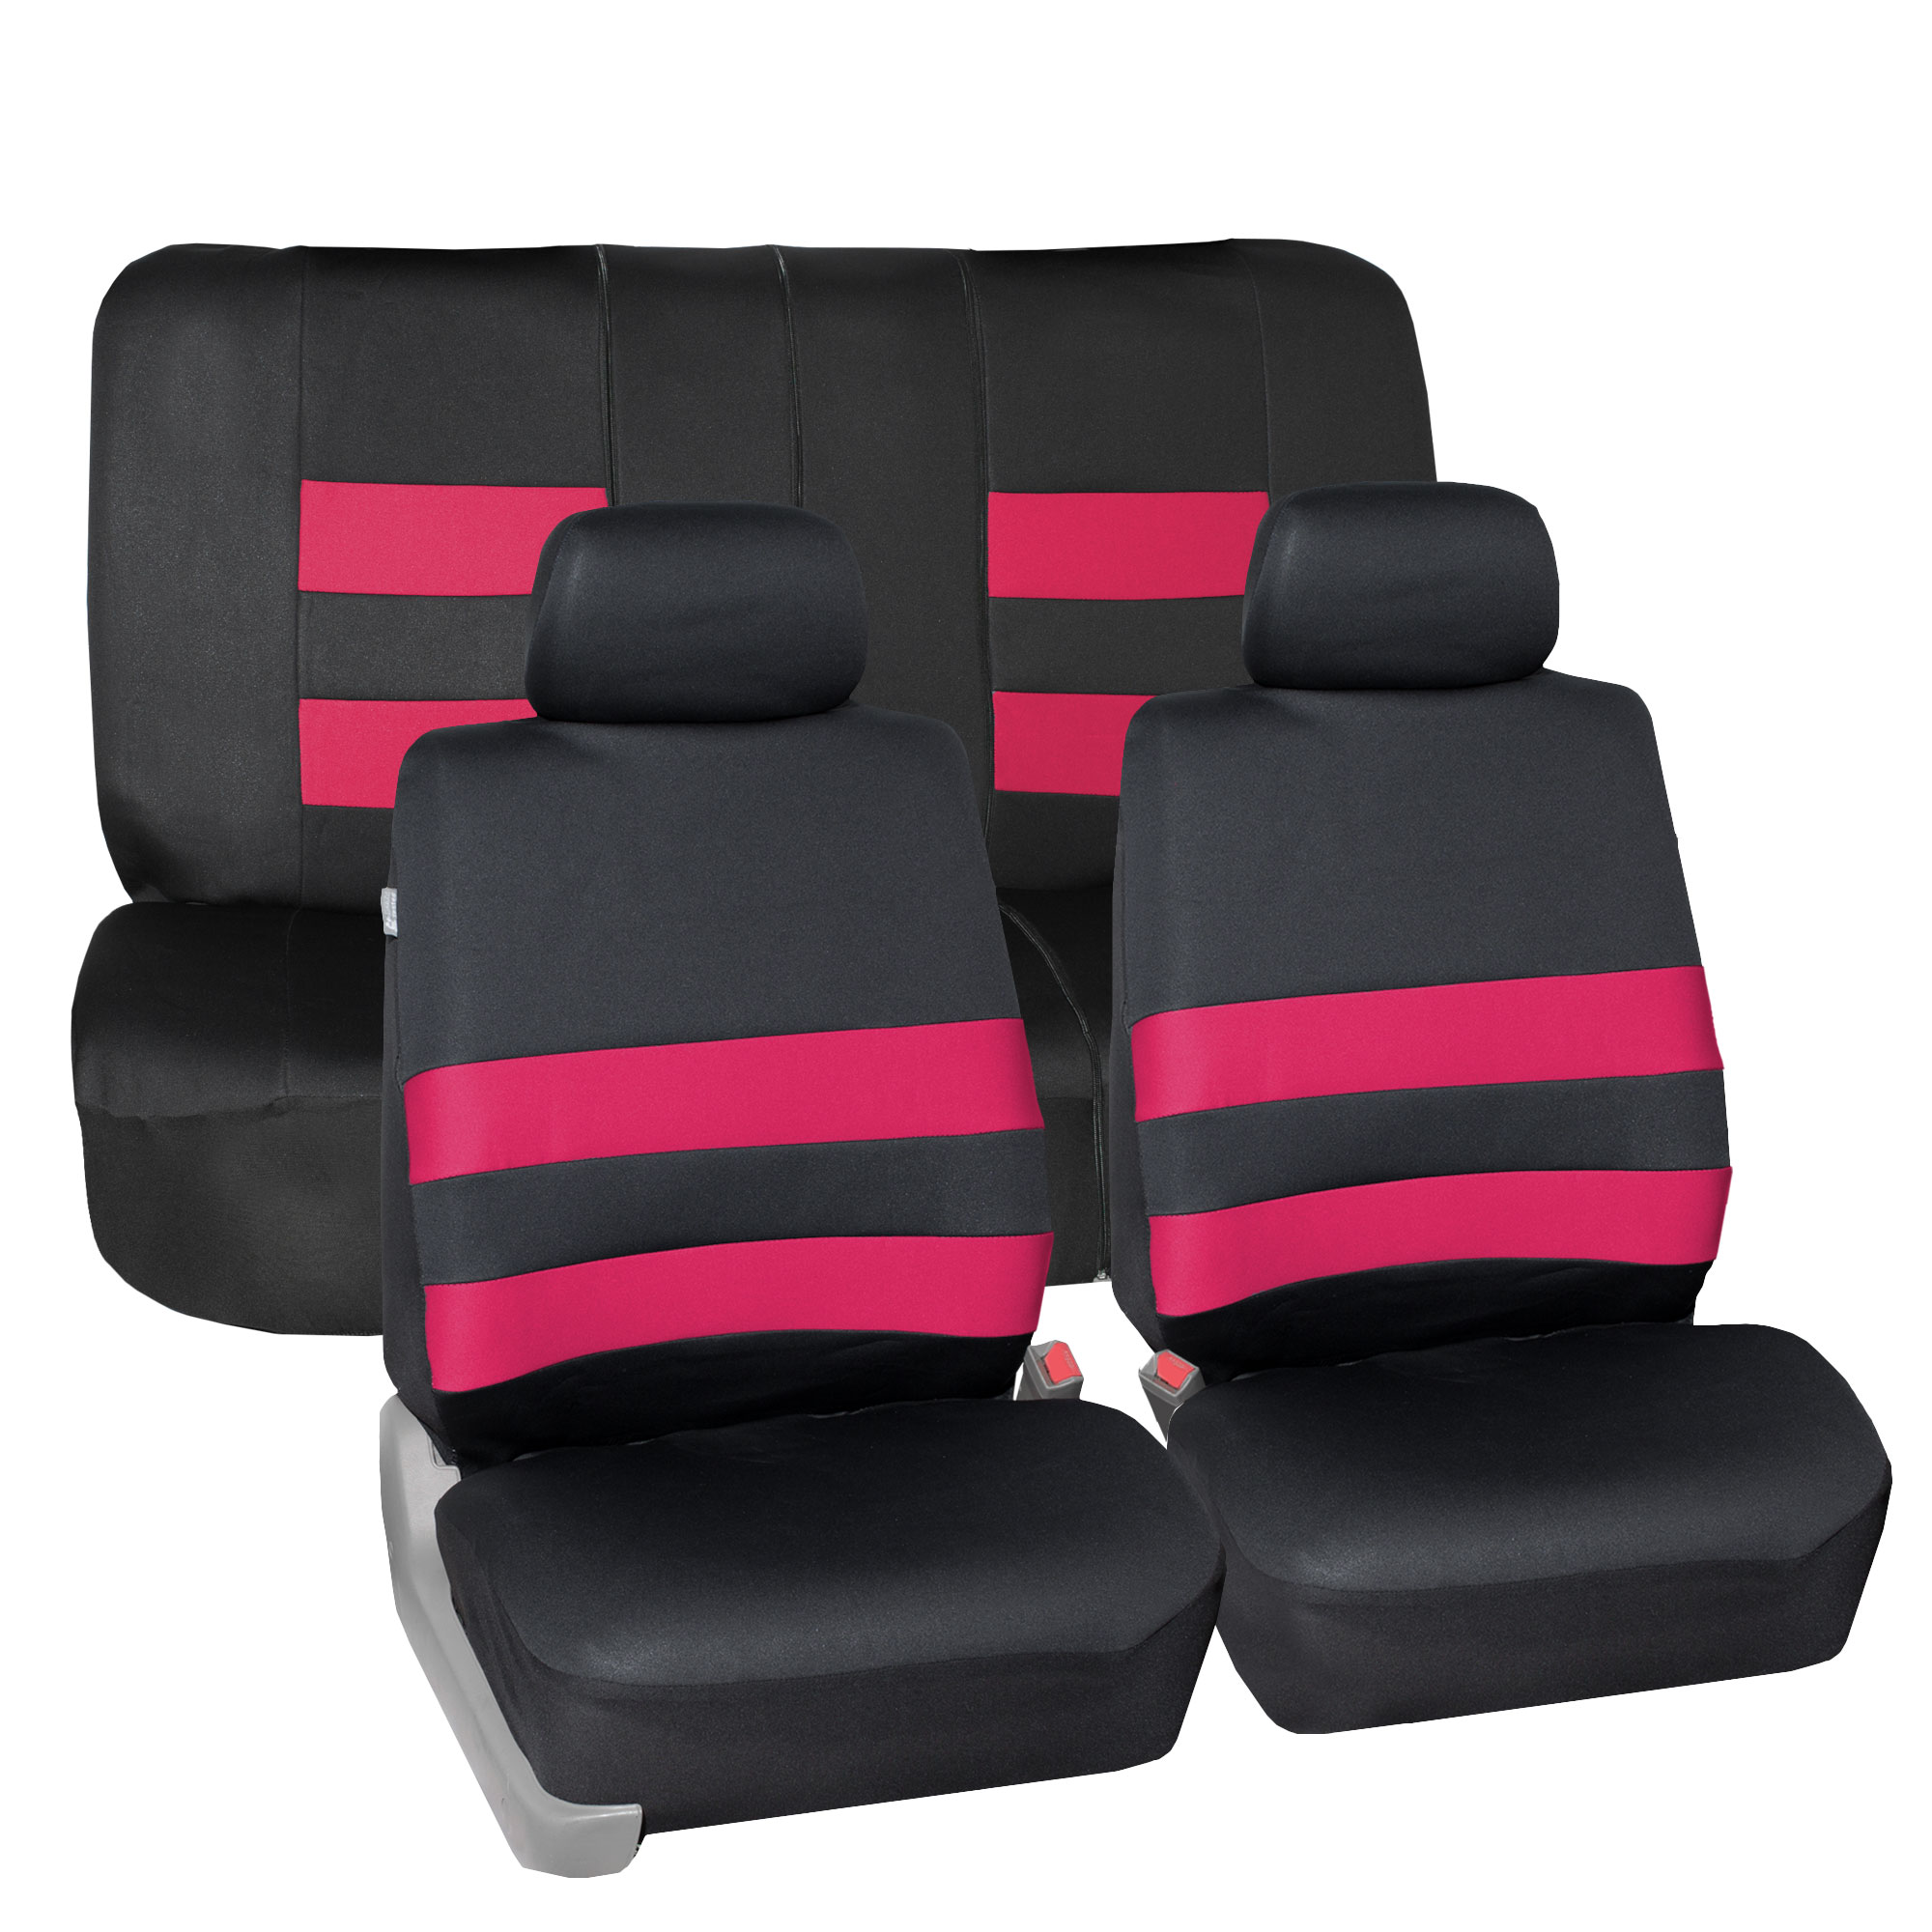 FH Group Premium Neoprene Seat covers, Airbag & split  Compatible, Full Seat Covers with 2 Headrest Covers, 9 Colors